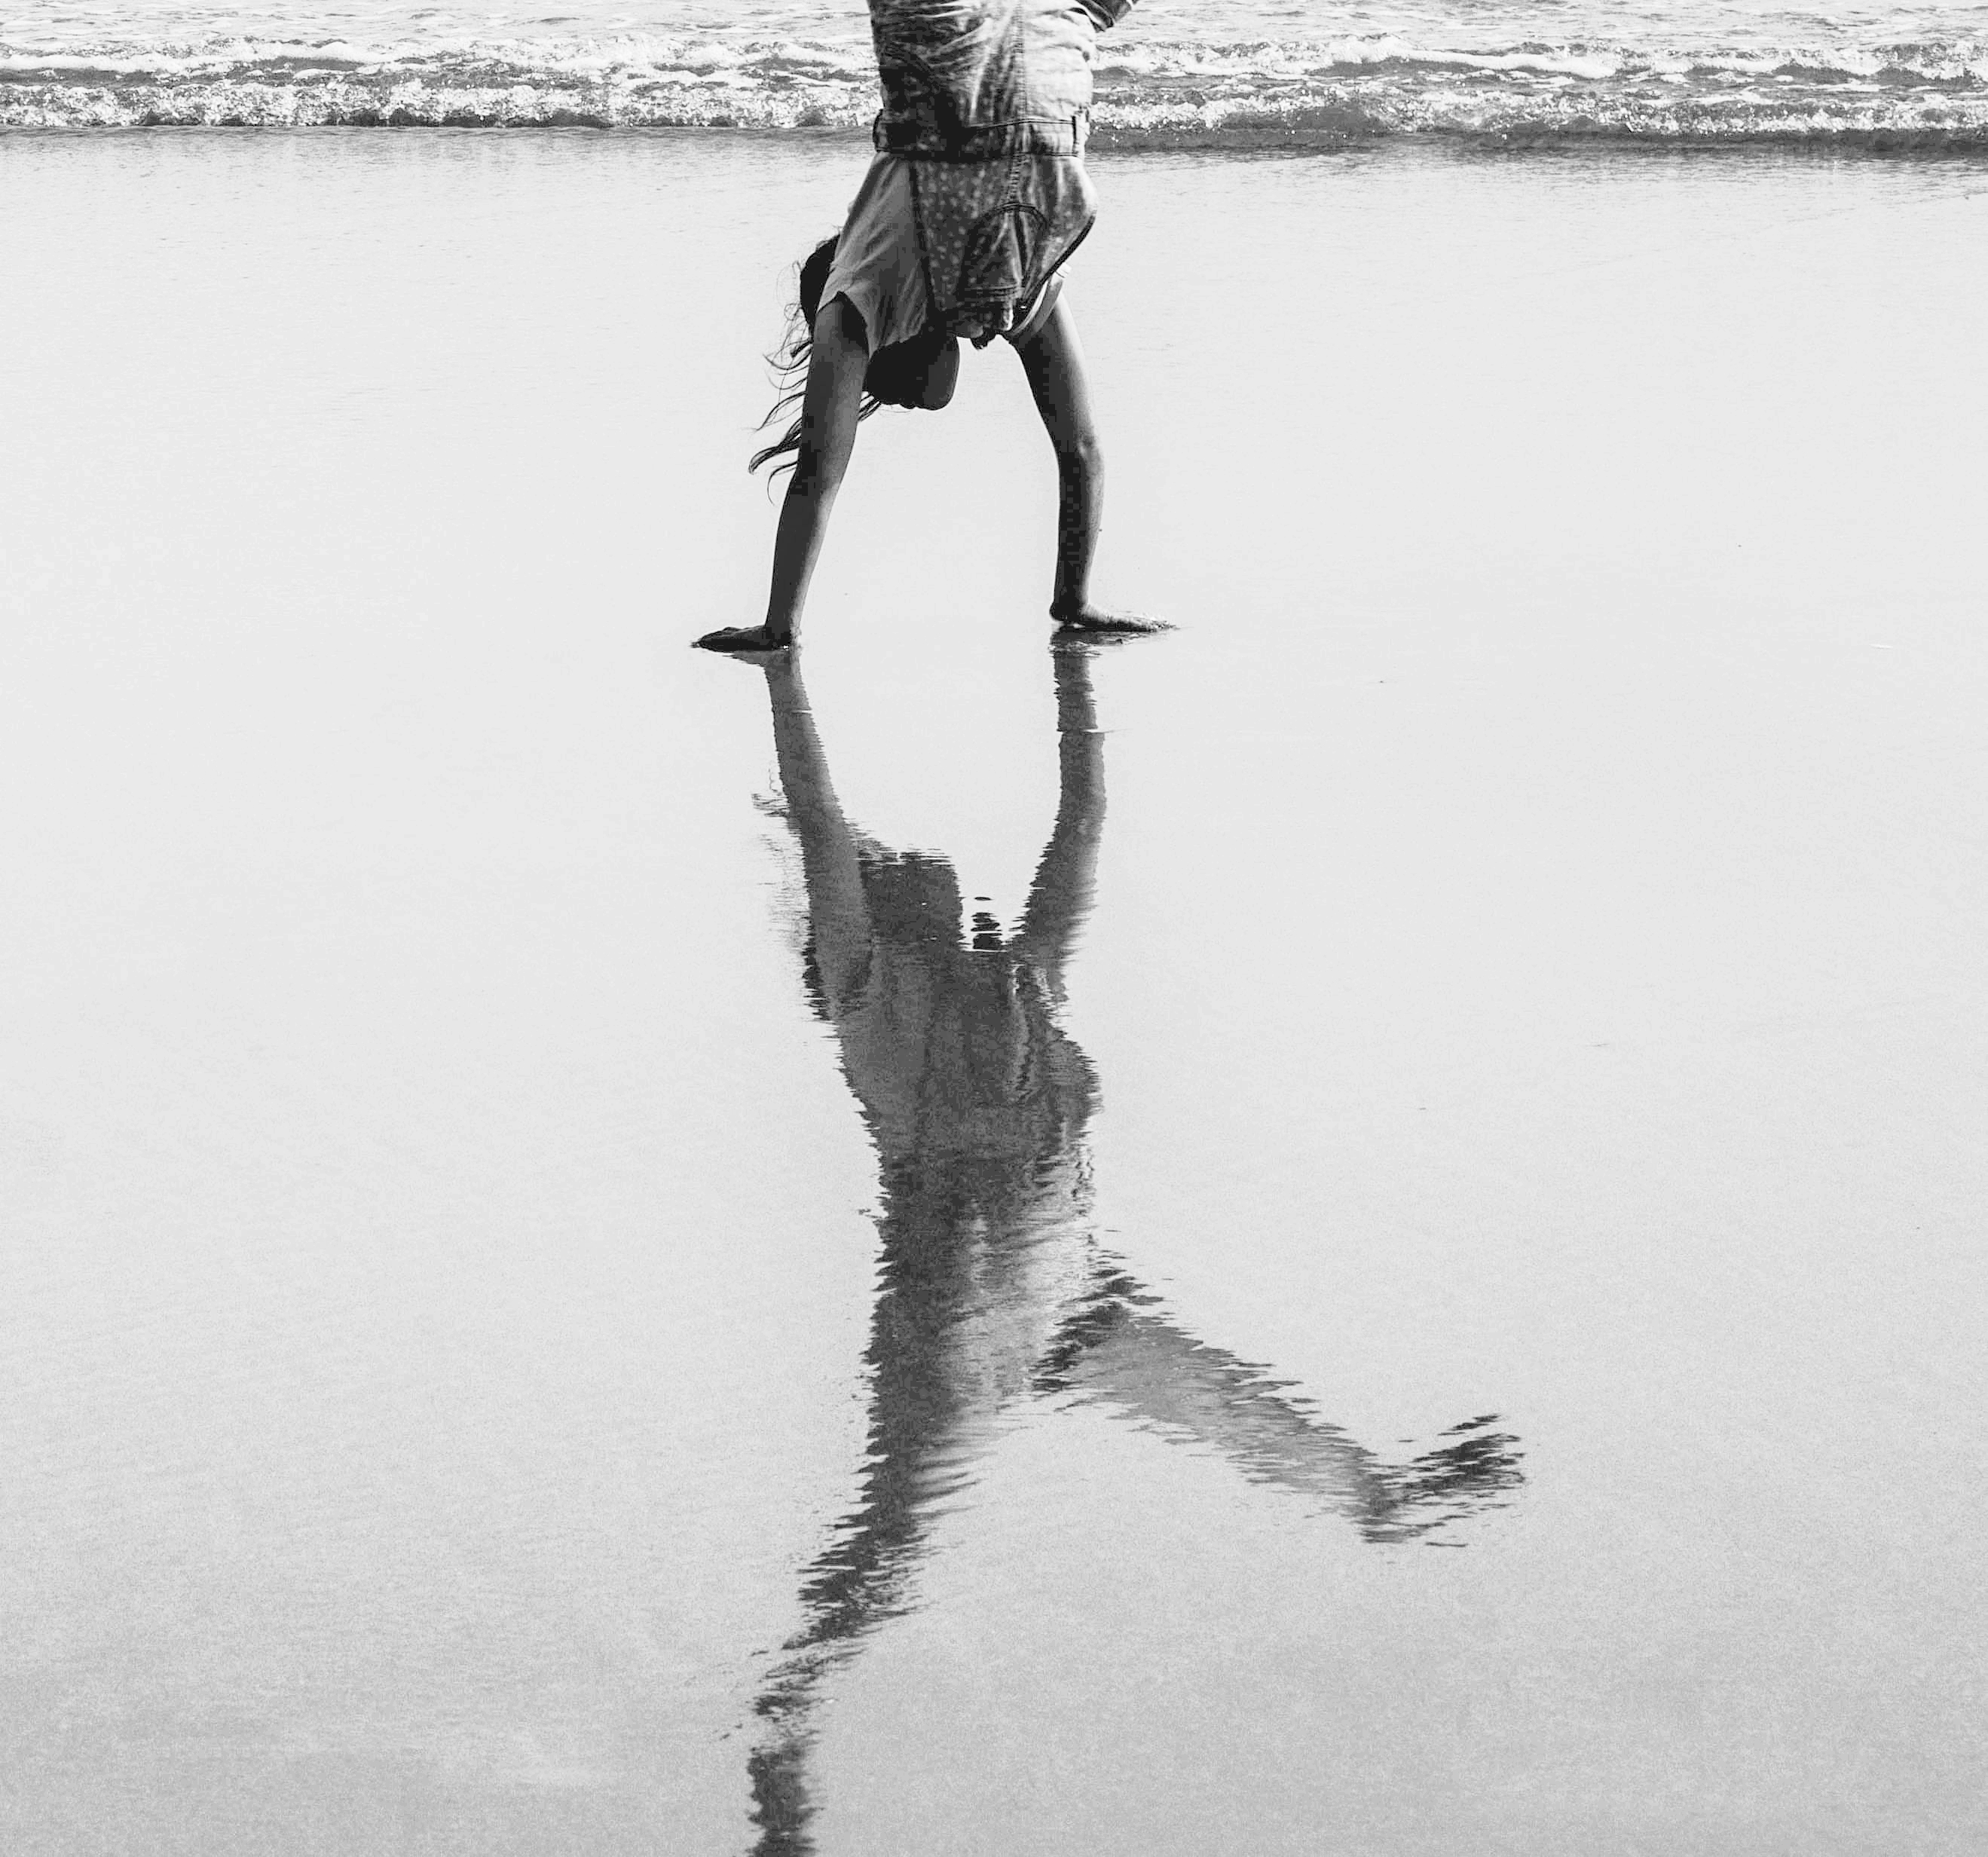 © Susie Guerrera, Australia, entry, Open competition, Creative, 2021 Sony World Photography Awards